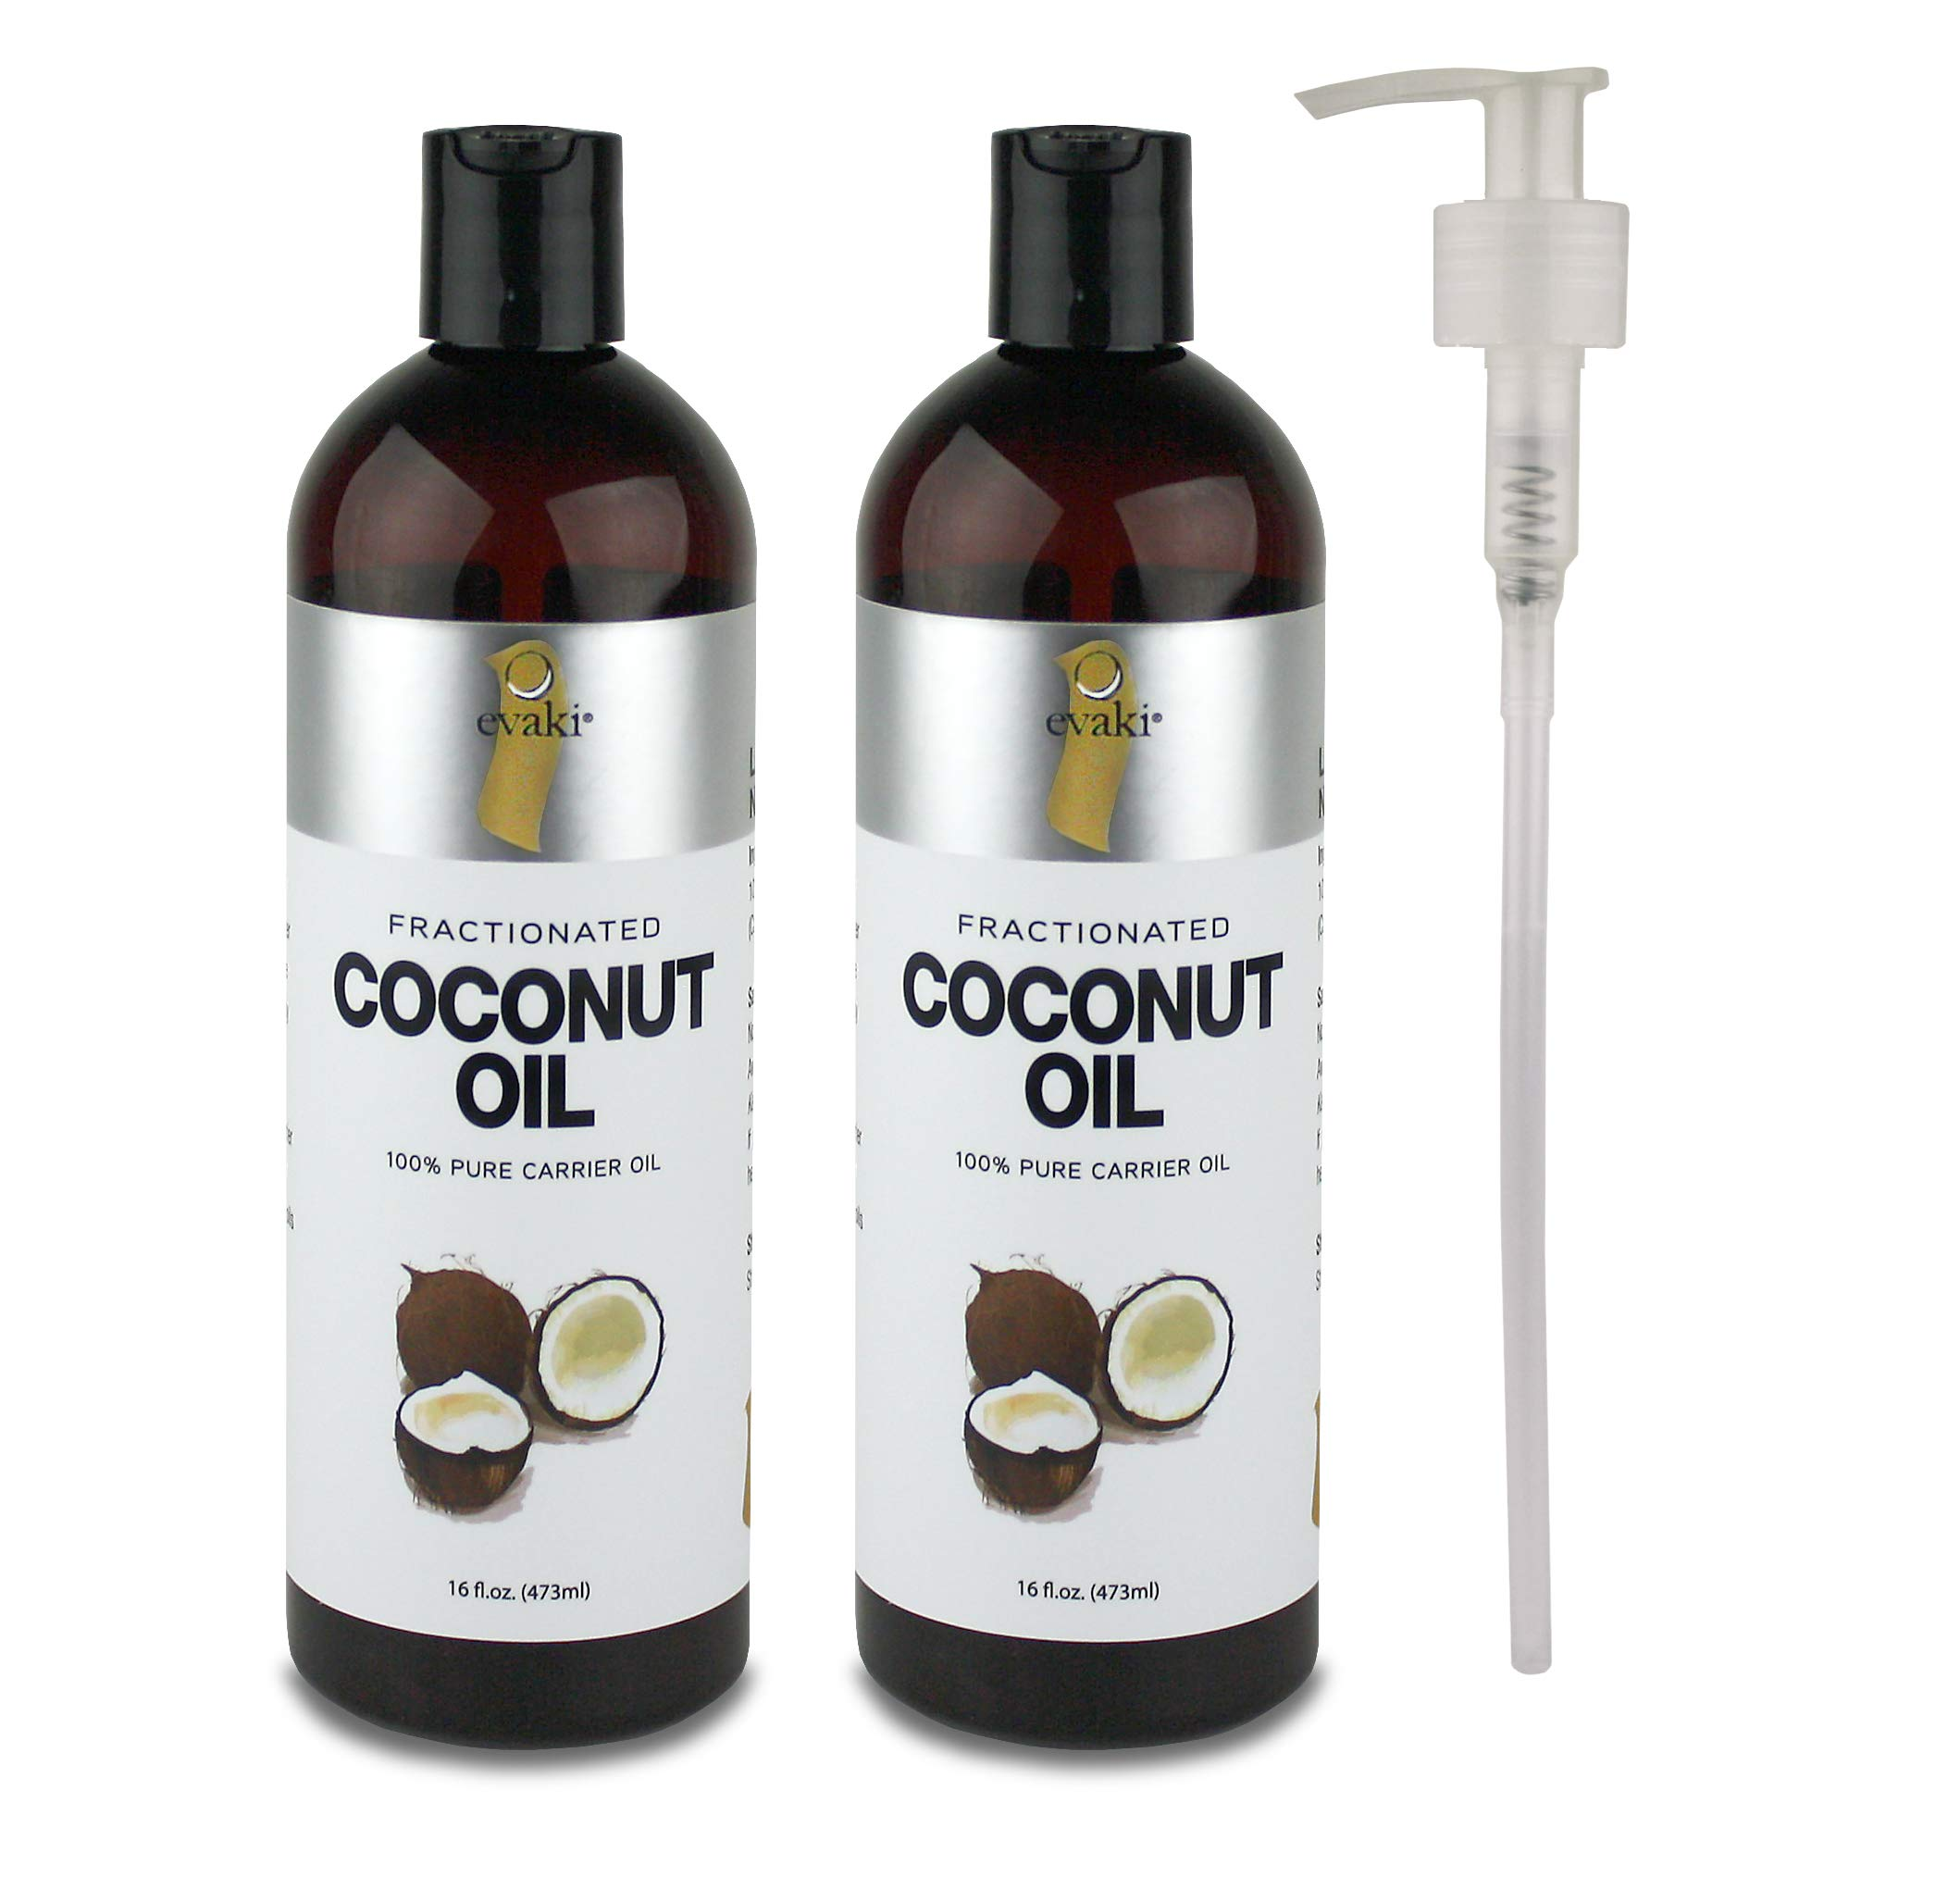 2-PACK Evaki 16oz Fractionated Coconut Oil + Hand Pump + Dispensing Cap— Bottled in the USA; A Must Have for Skin & Hair Care, Massage Therapy and Aromatherapy (32 Total Ounces!)